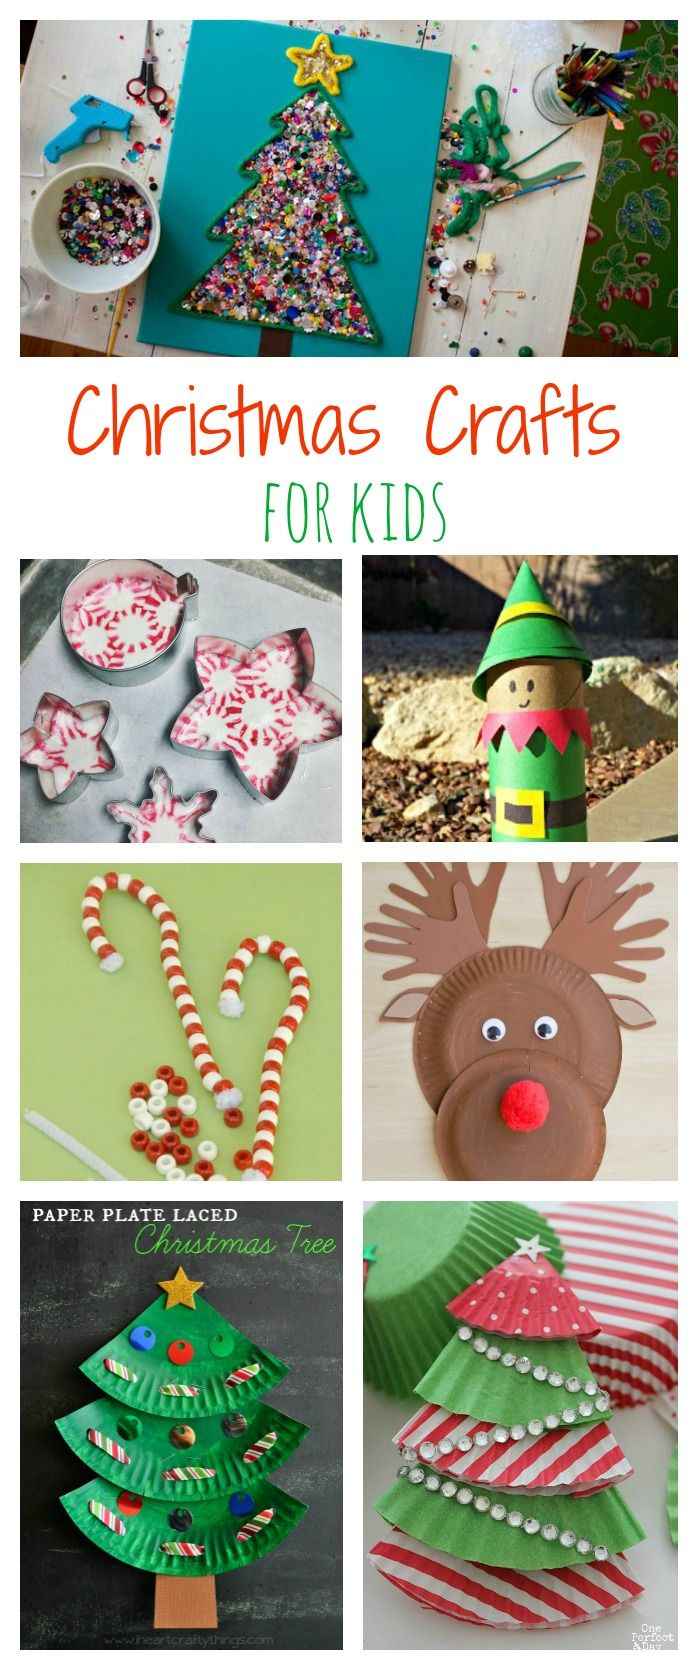 Christmas Crafts for Kids- Fun, cute, and easy ideas!